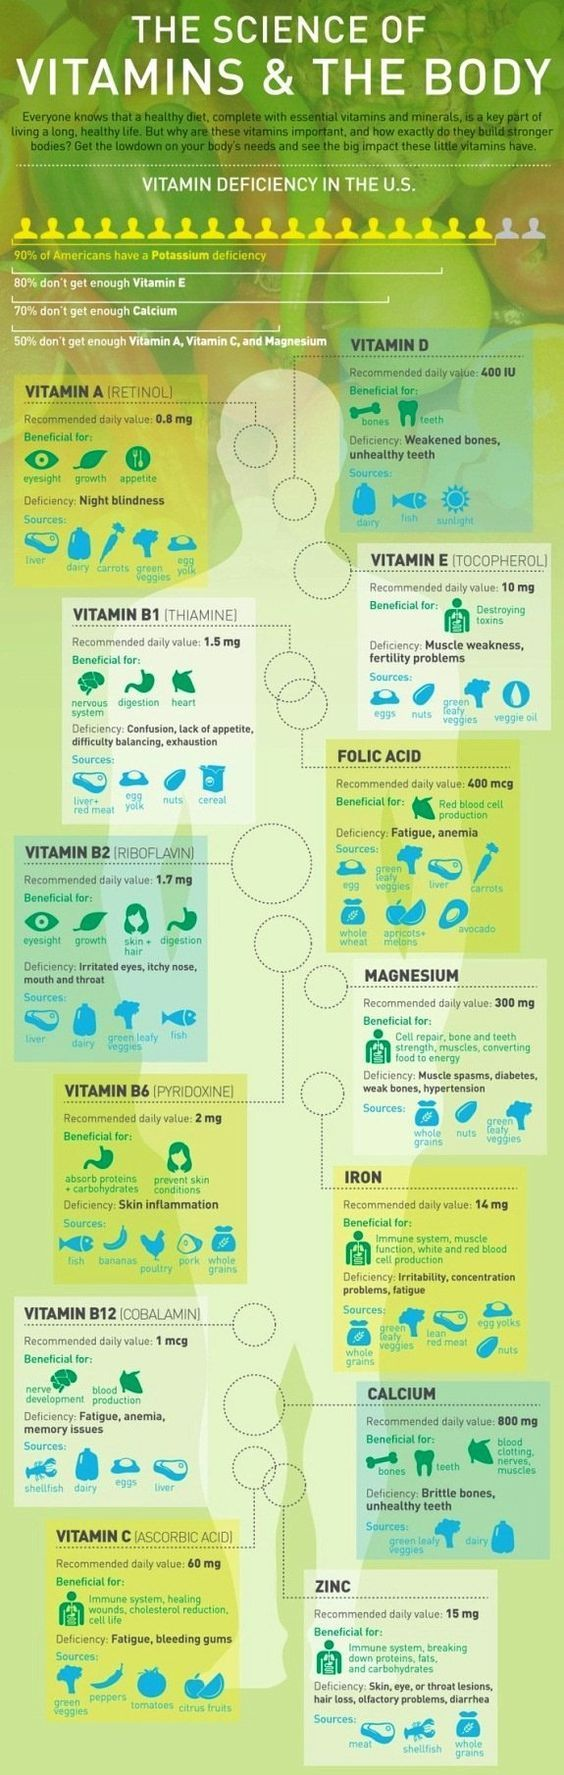 Vitamins, Food Sources, and How Defficiencies Affect Your Body. Learn about the health beneficial qualities of Formula 1. Based on billions of dollars on Russian adaptogenic science; the herbal superfood blend helps your body defend against stress by boosting the immune system, improving sleep, increasing energy, improving memory, and enhancing mental focus. Live younger today! #AntiAging #Adaptogenics #Adaptogens #Stress #Management #Reduction #Solutions #Antioxidants